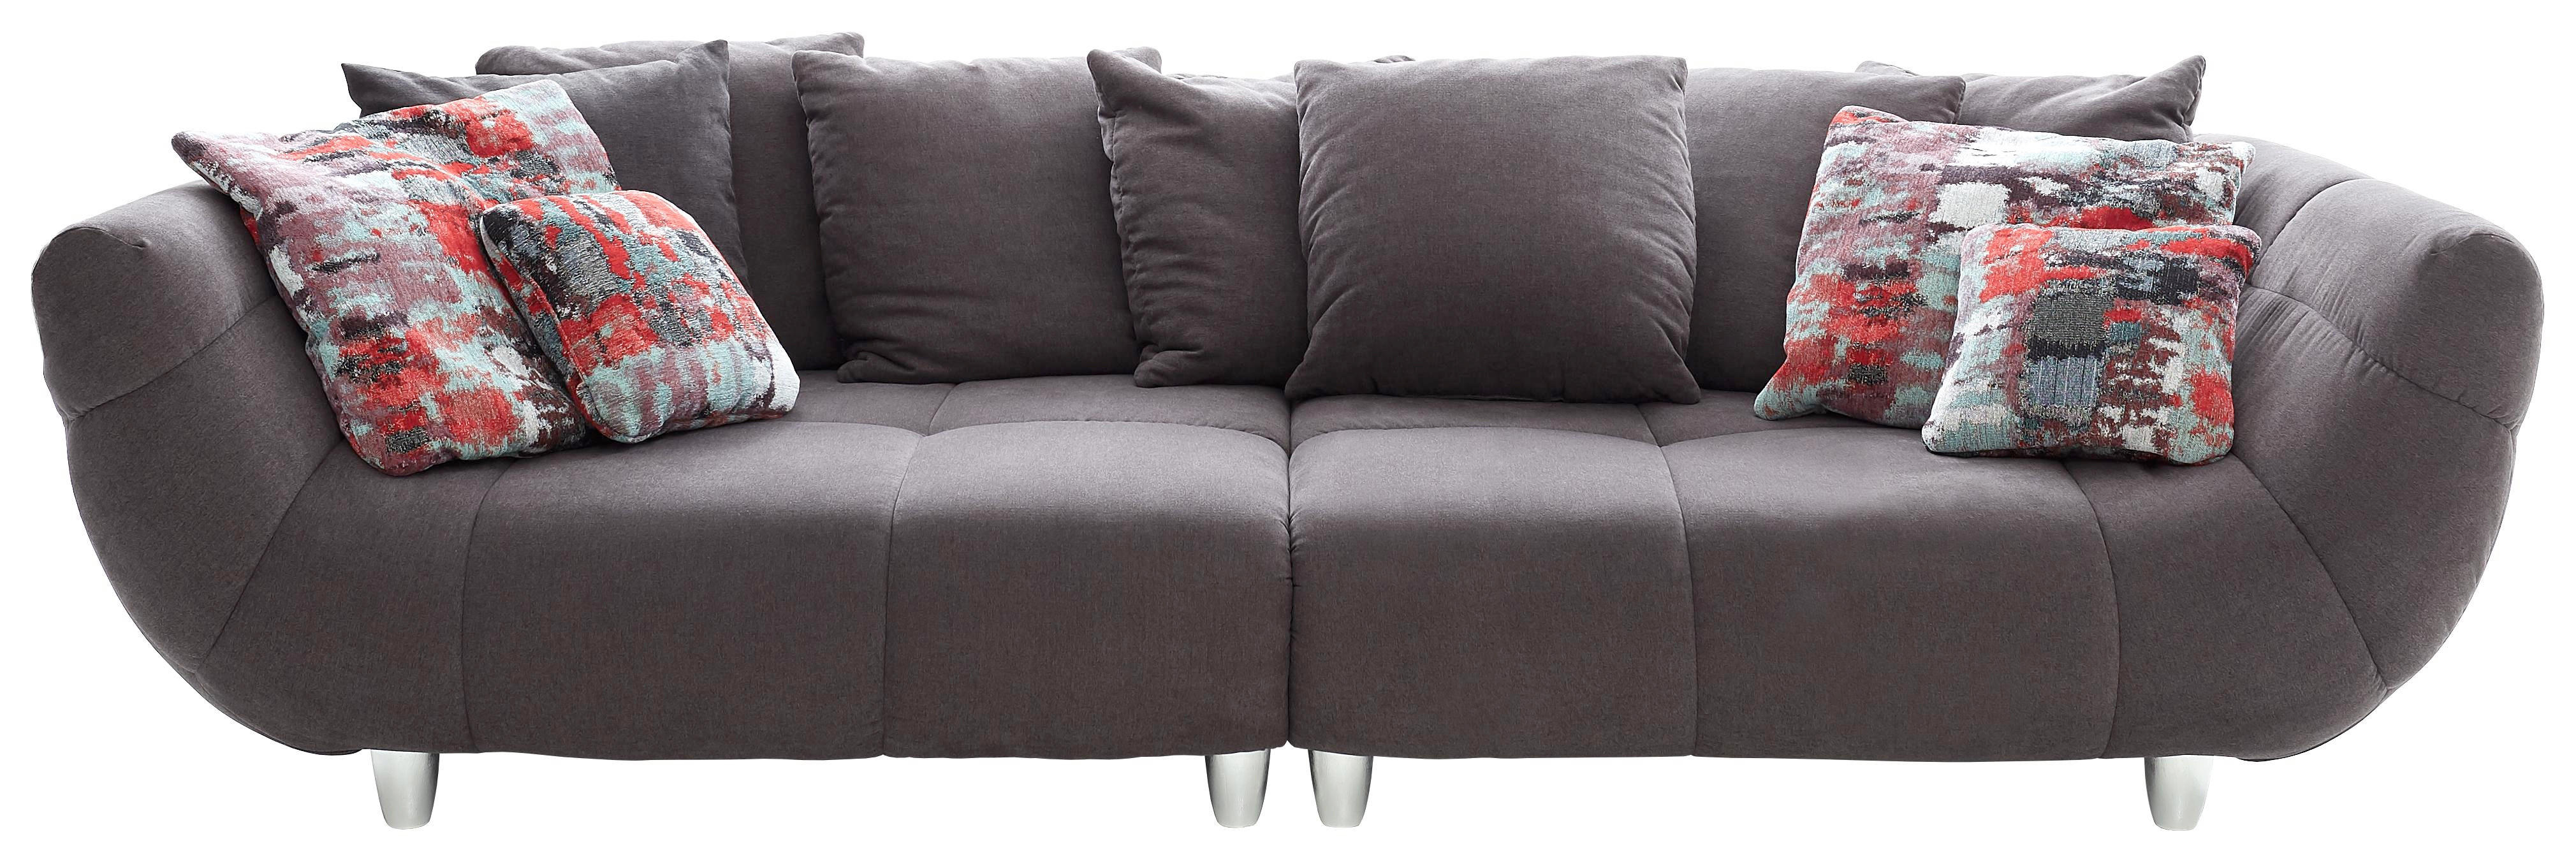 Bigsofa Blair Big Sofa Microfaser Beautiful Bigsofa Mikrofaser Anthrazit